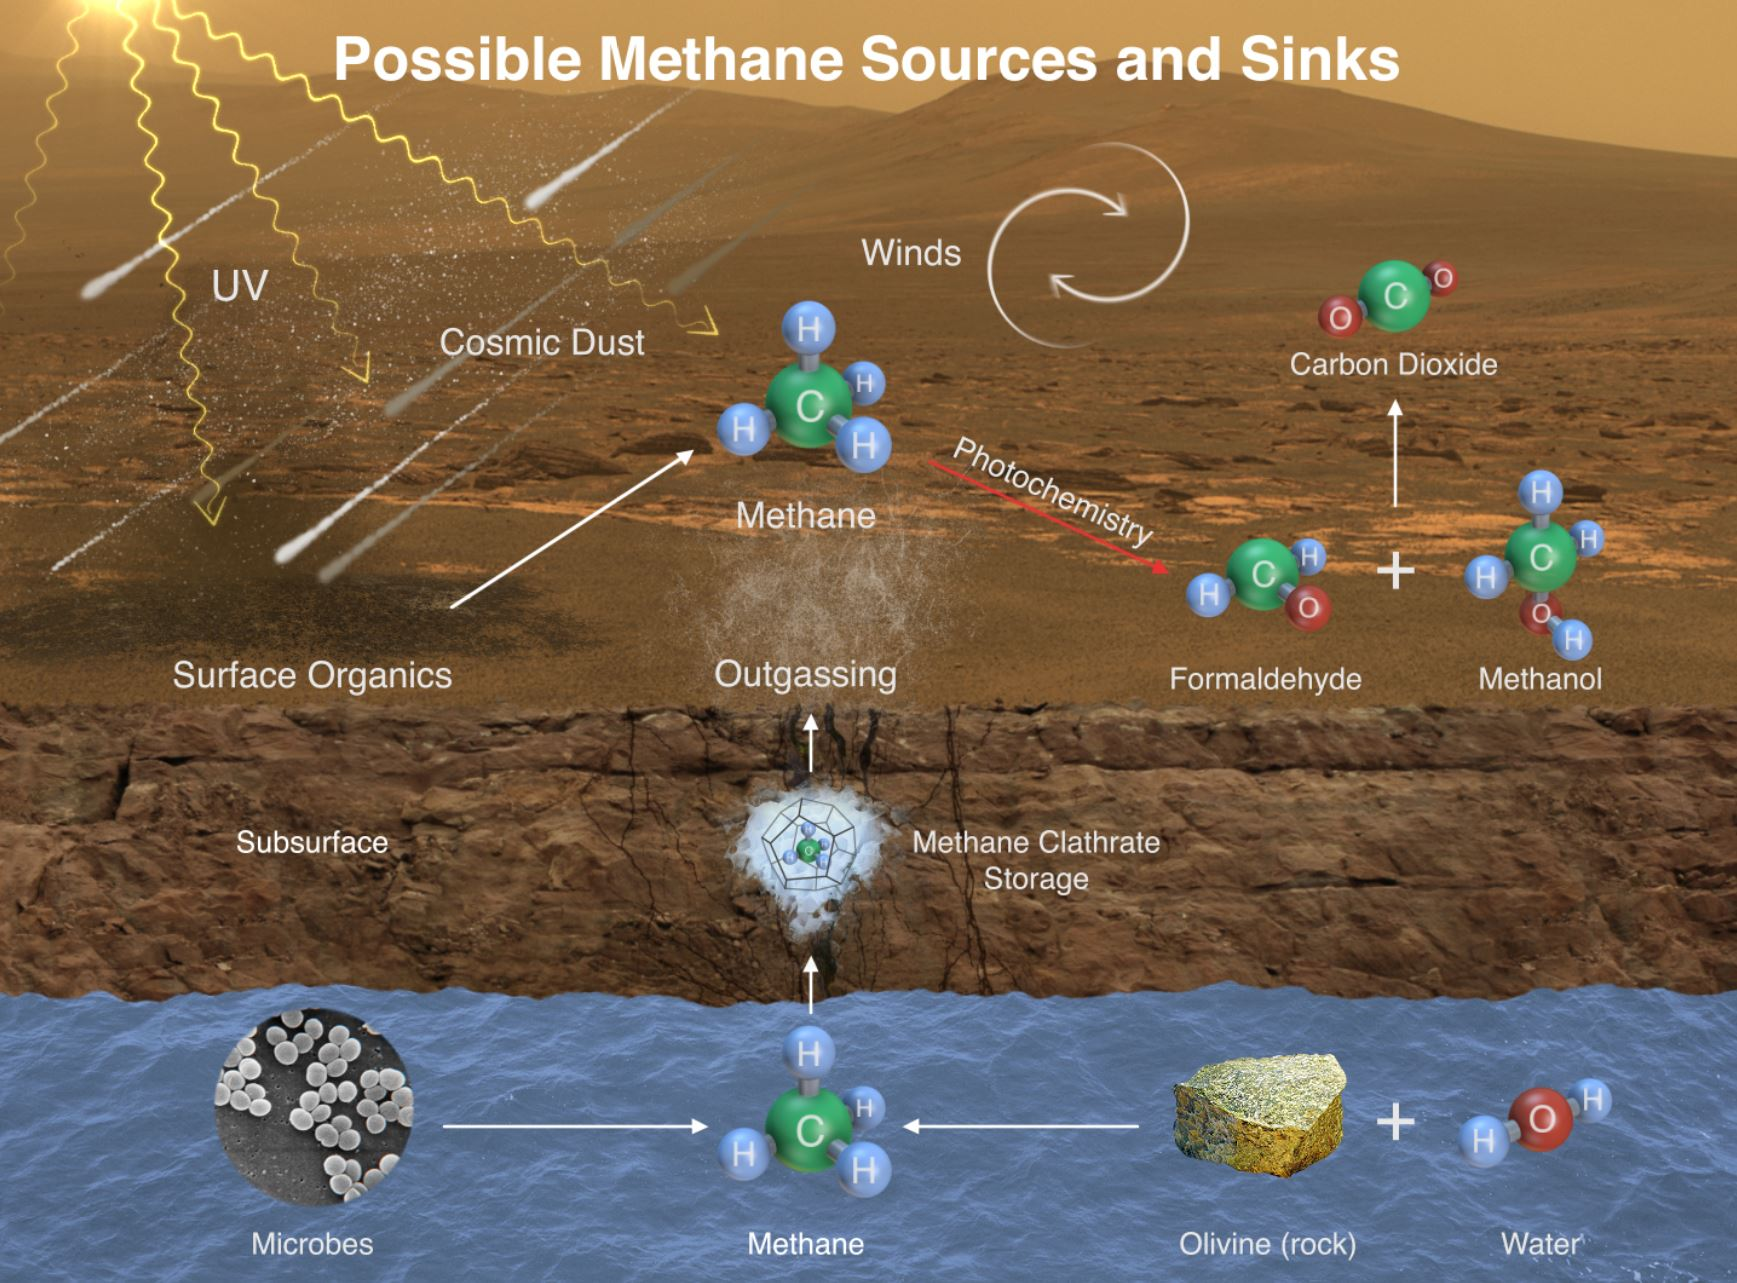 This illustration portrays possible ways that methane might be added to Mars' atmosphere (sources) and removed from the atmosphere (sinks). - Image credits: NASA/JPL-Caltech/SAM-GSFC/Univ. of Michigan (Click to enlarge)